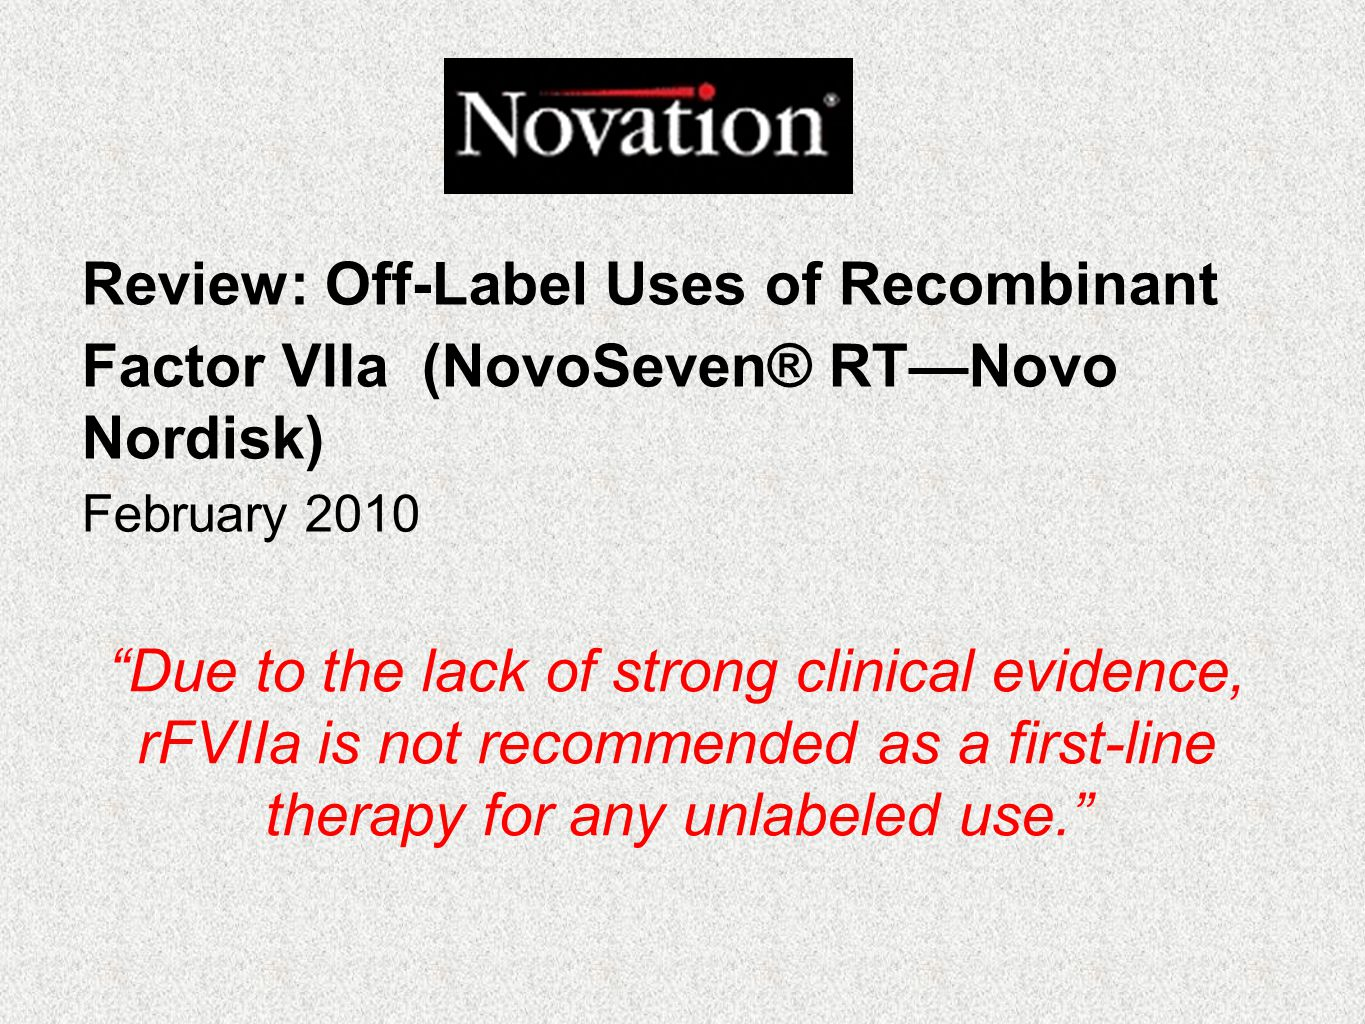 Review: Off-Label Uses of Recombinant